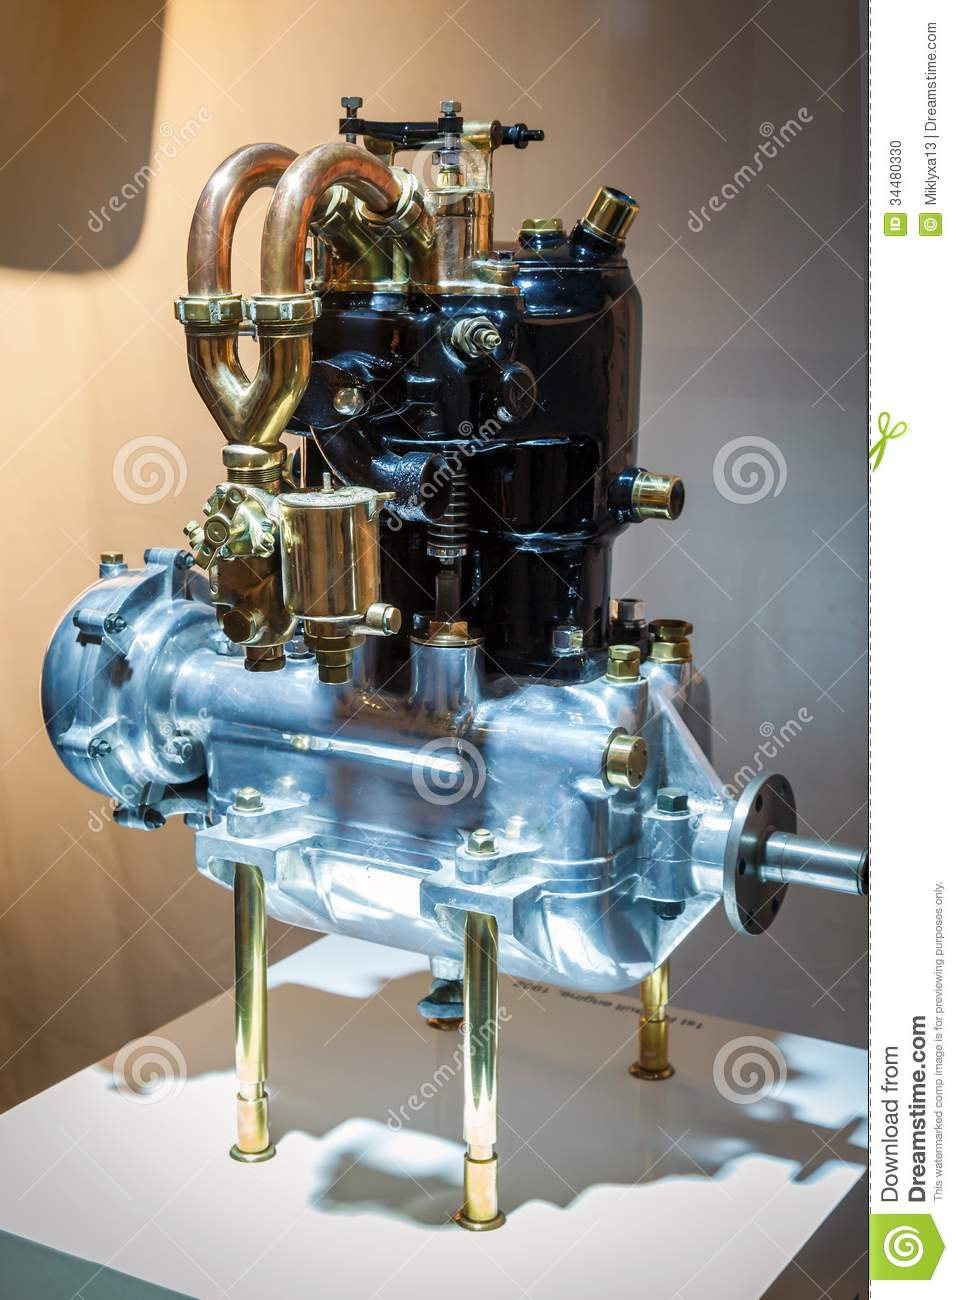 Old Two-cylinder Car Engine Stock Photo